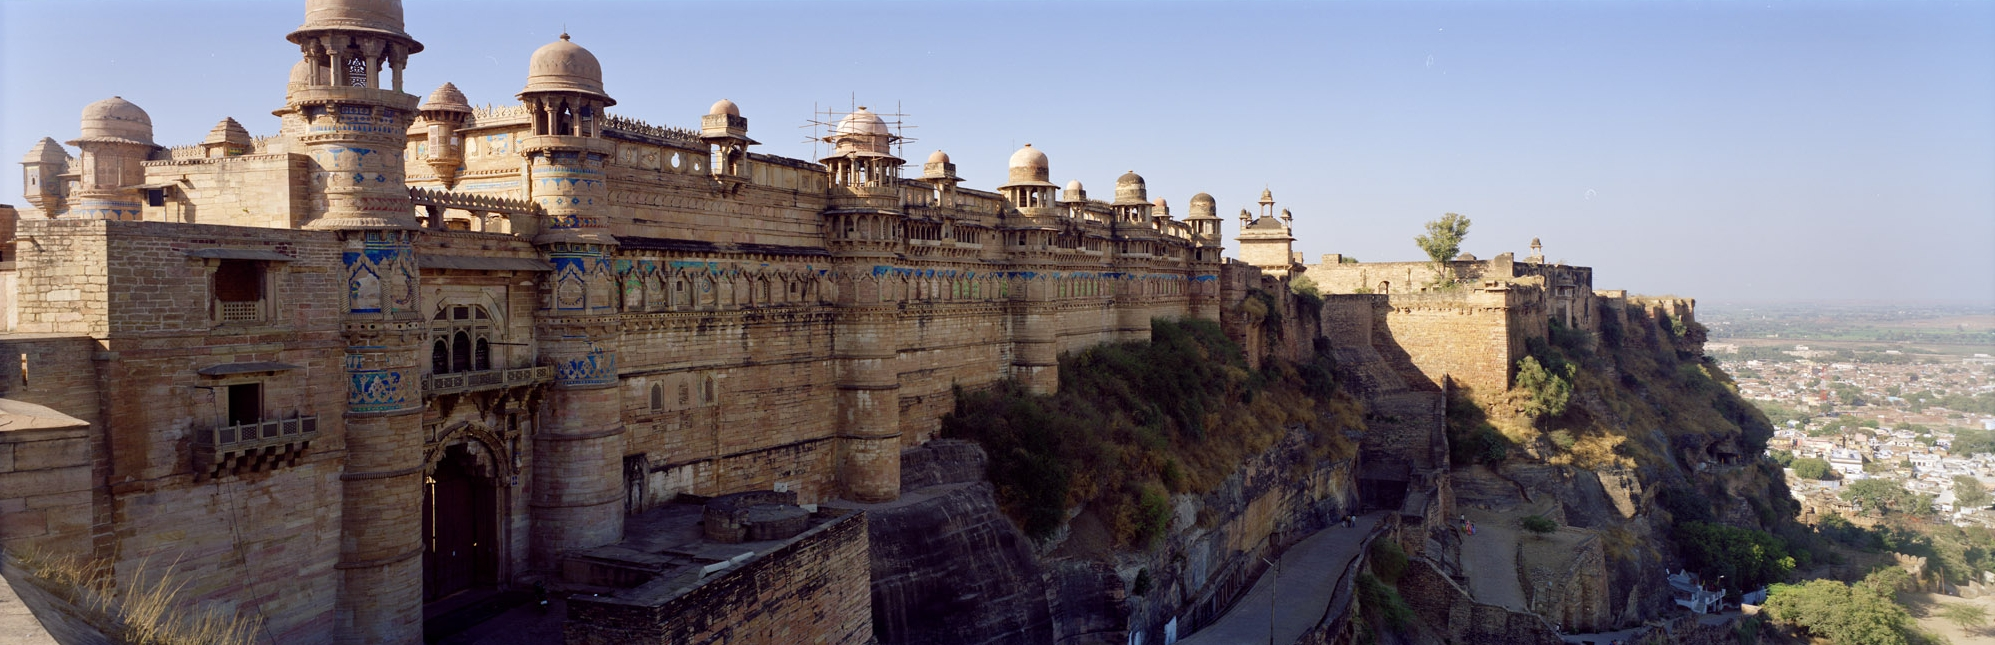 Gwalior Fort (Image by Pavel Suprun and under Creative Commons License)